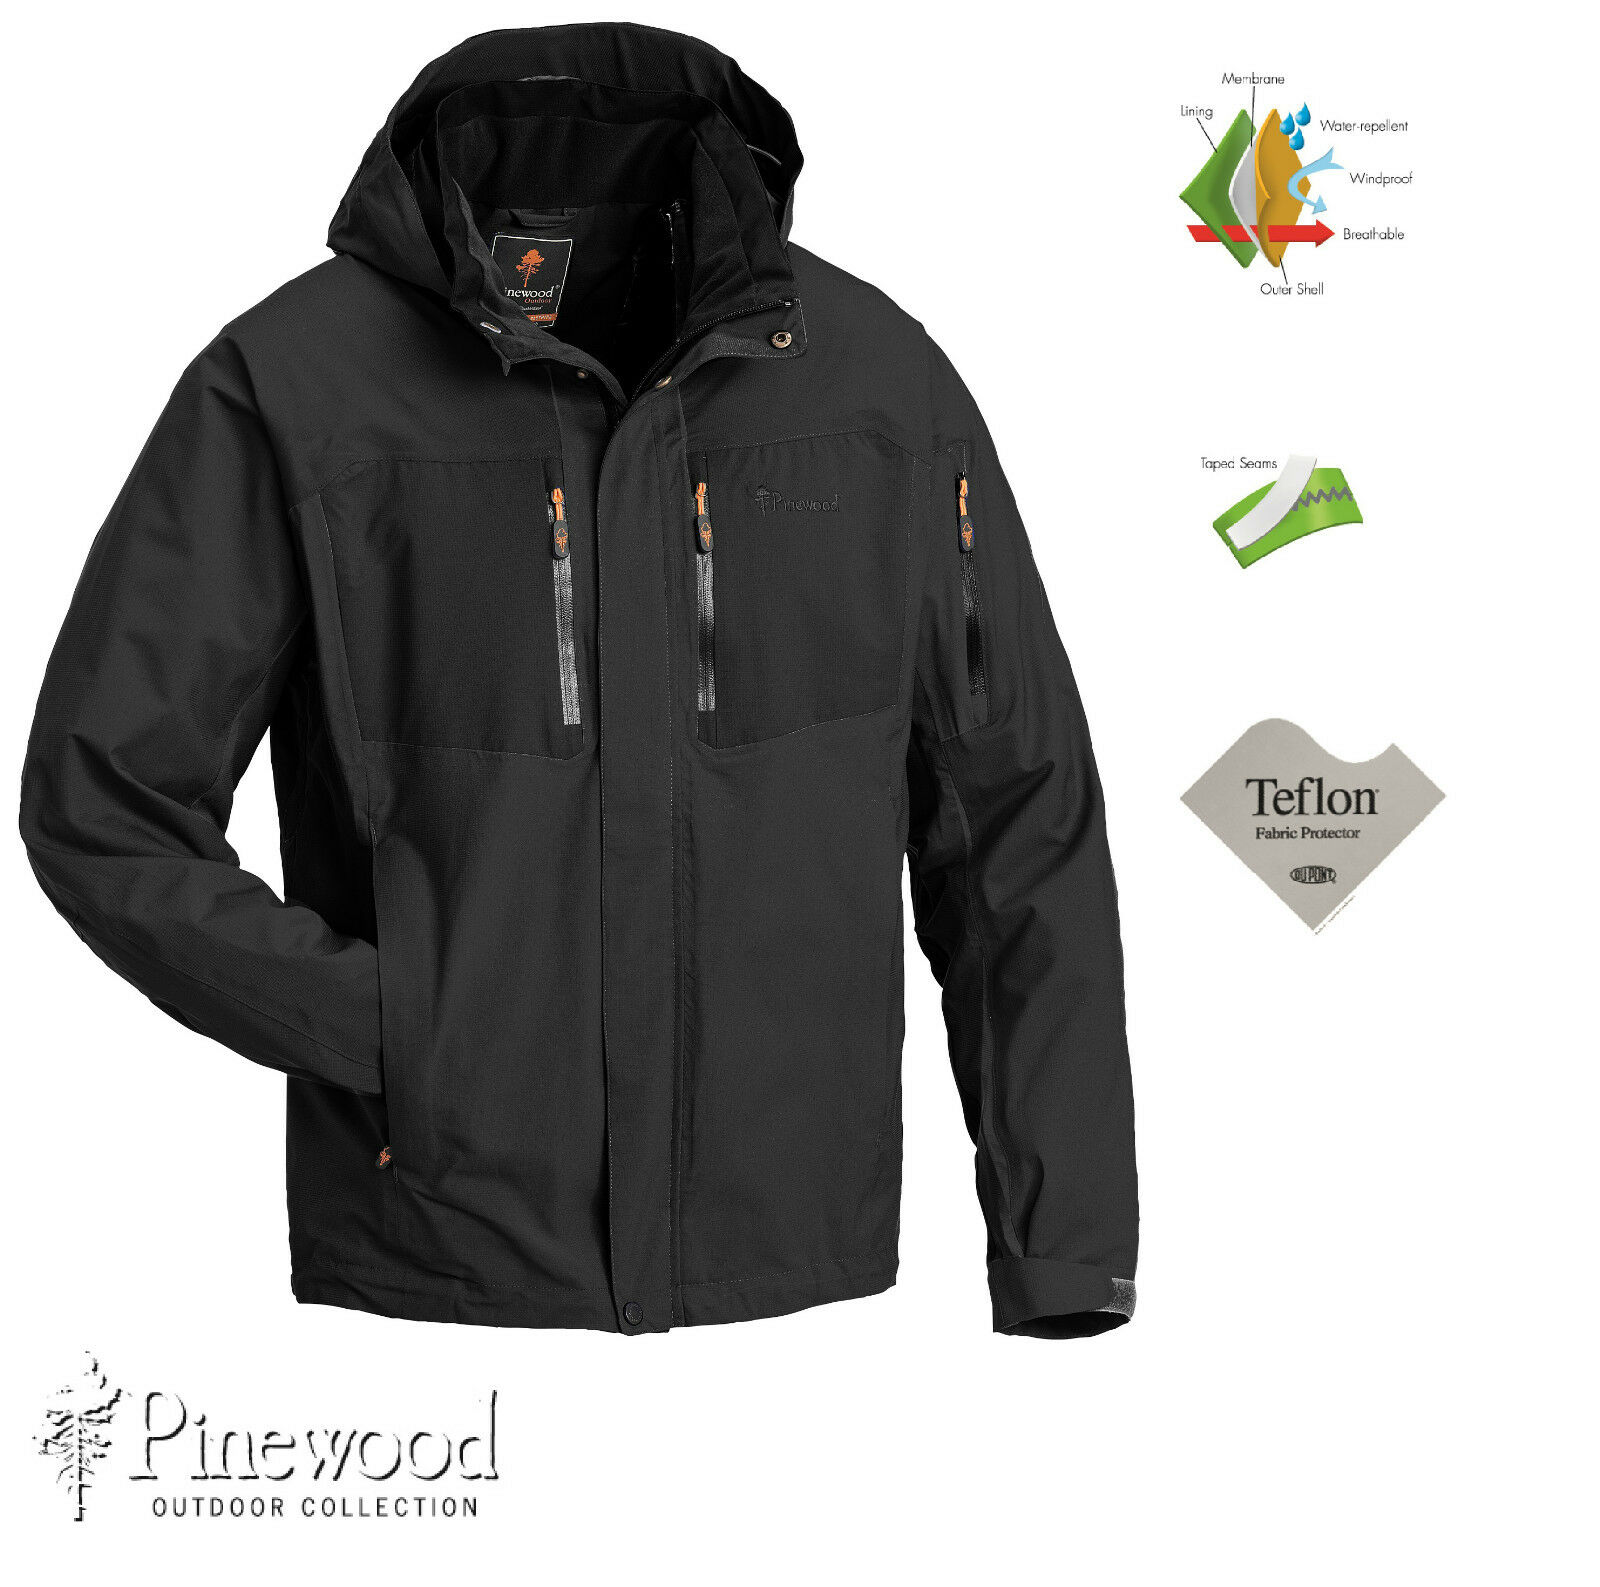 Juptr Pinewood Al aire libre chaqueta. impermeable y transpirable